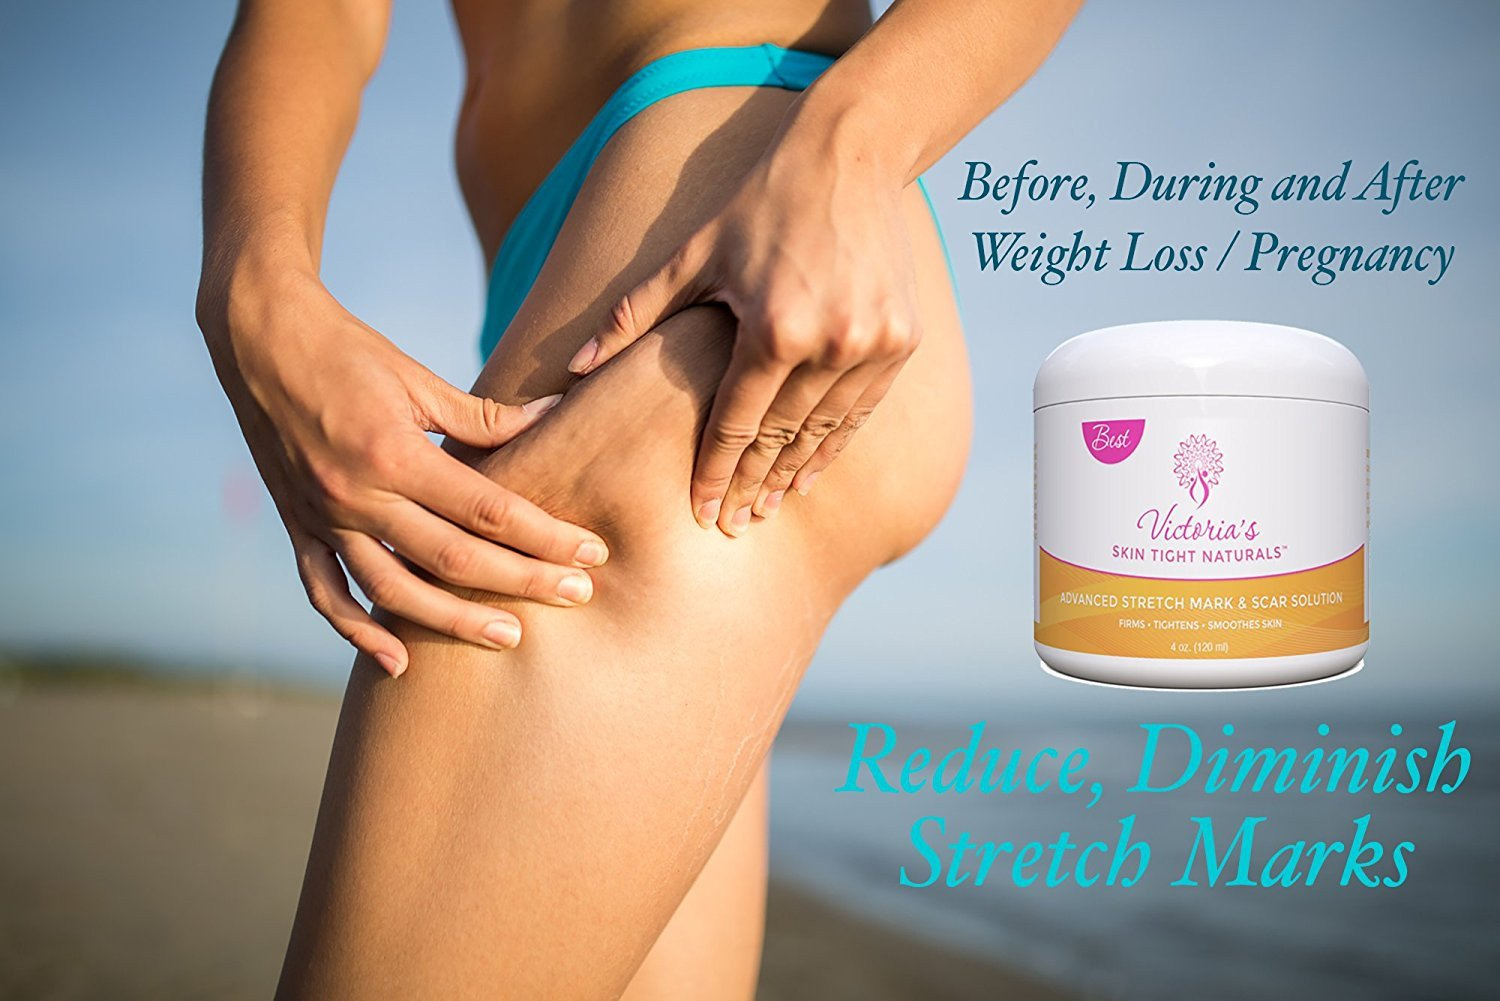 thigh hips, legs stretch marks cream